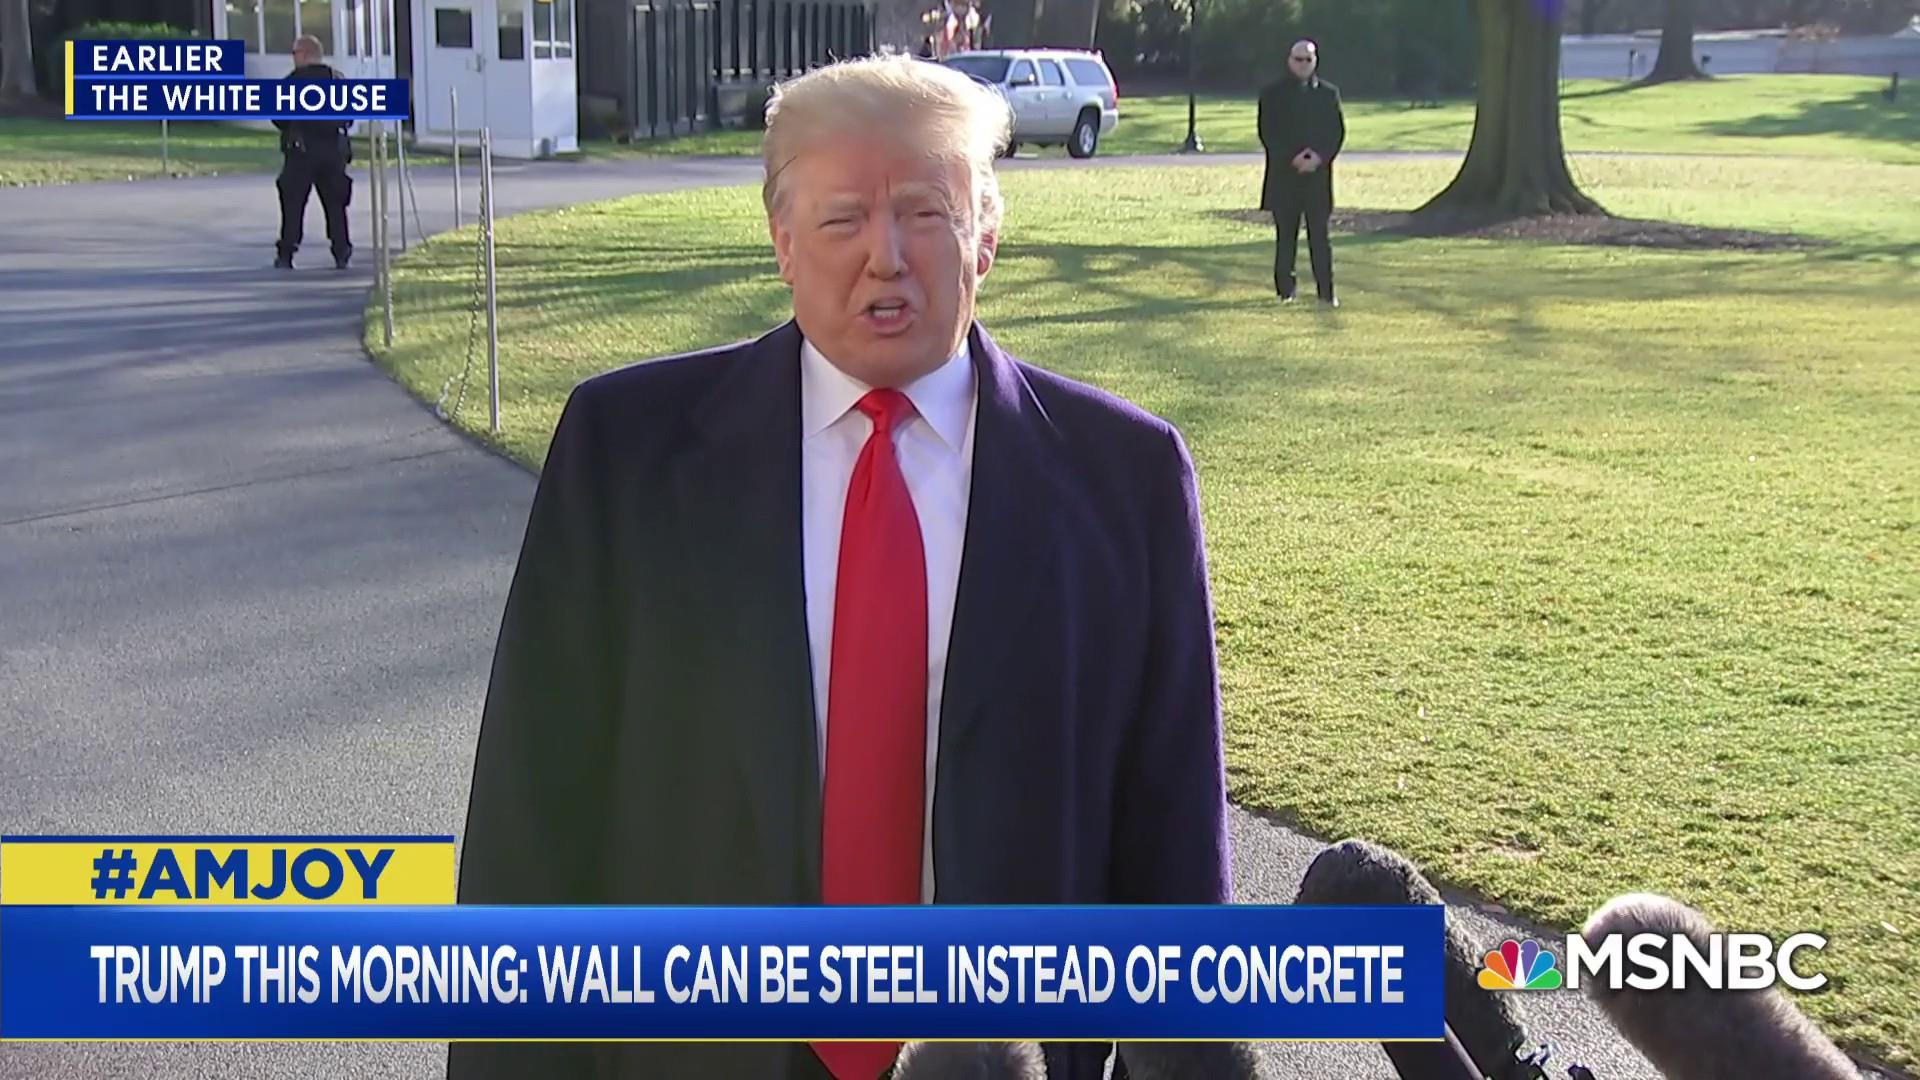 Trump says wall can be steel instead of concrete